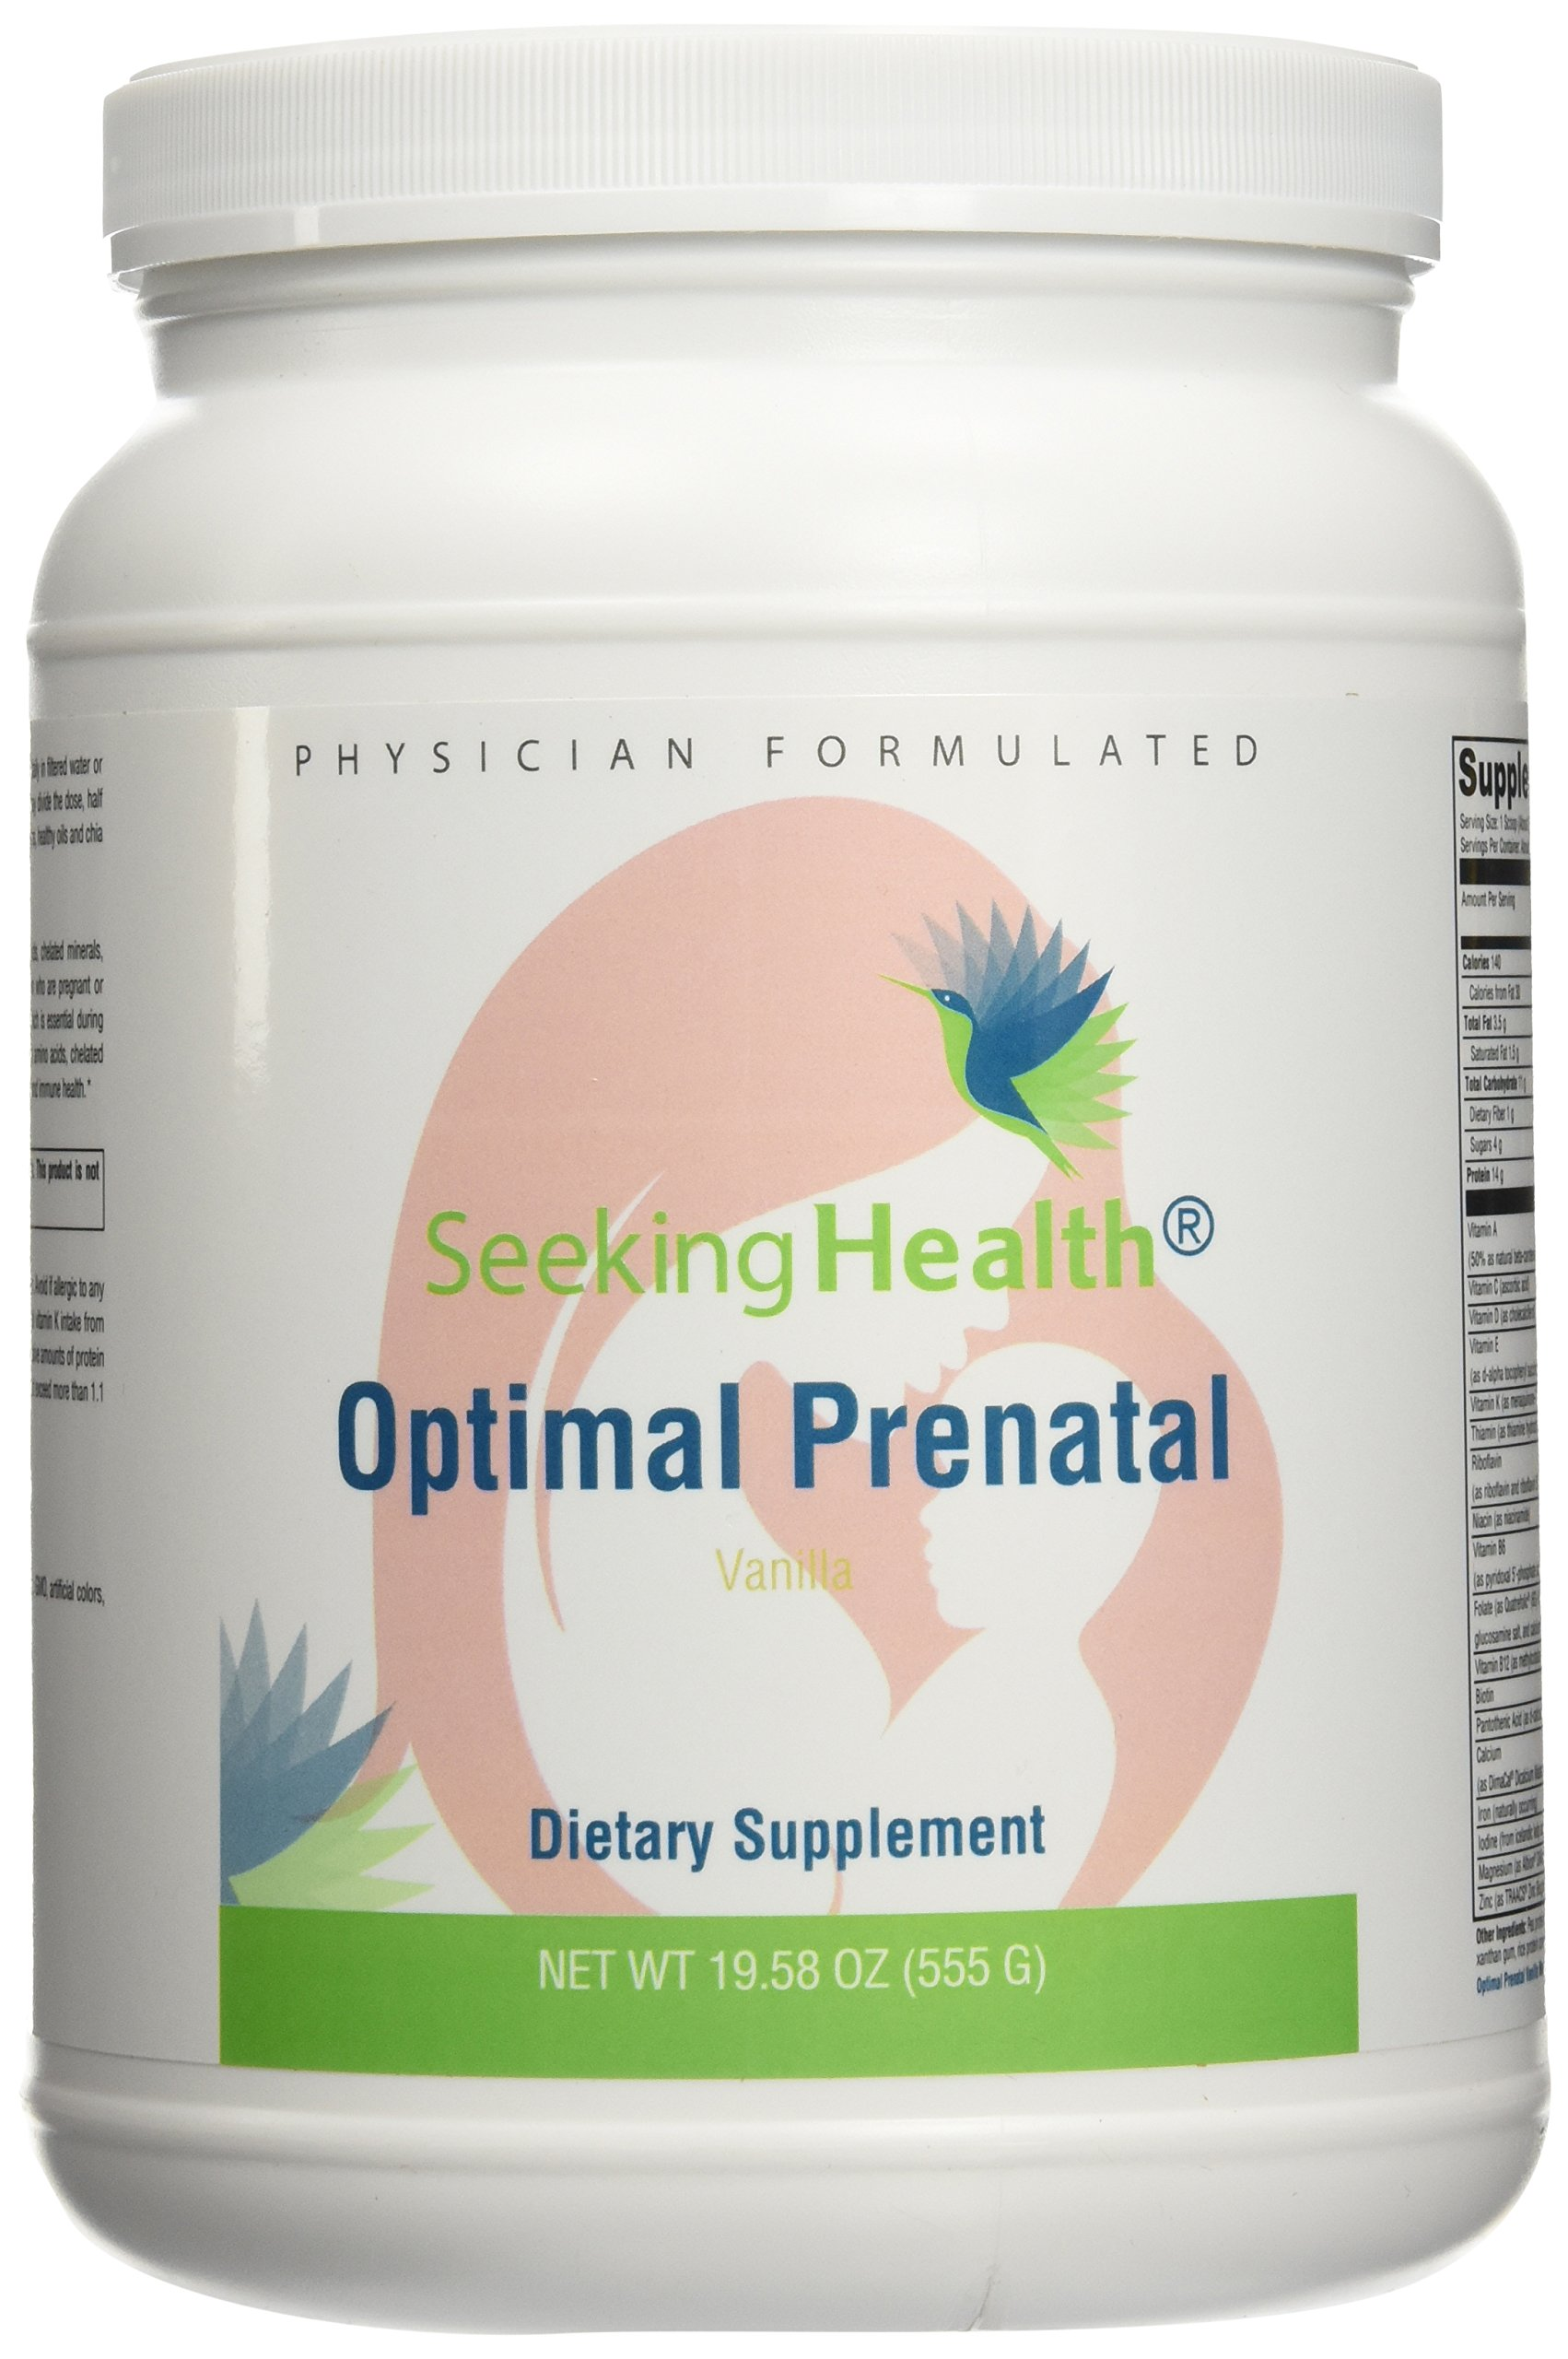 Optimal Prenatal Protein Powder | Non-GMO | Free of Common Allergens | Physician Formulated | Seeking Health (Vanilla - 15 Servings)